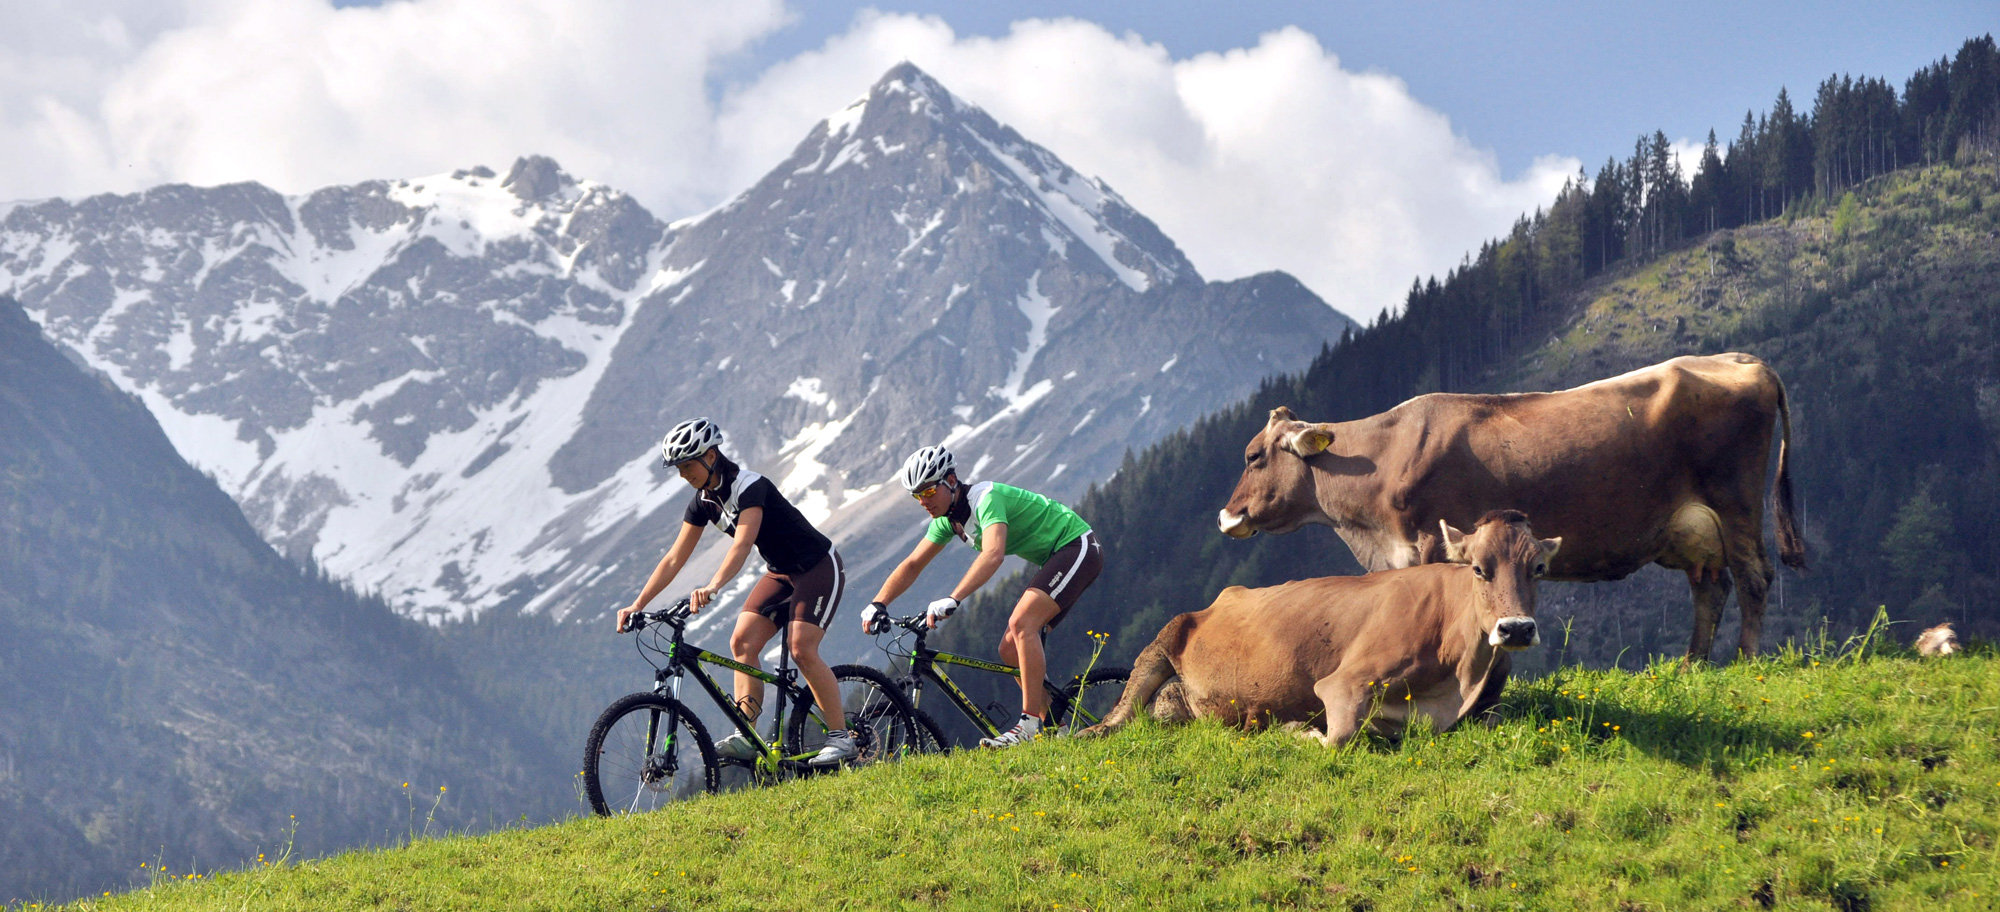 NOCG summer activites include mountain biking